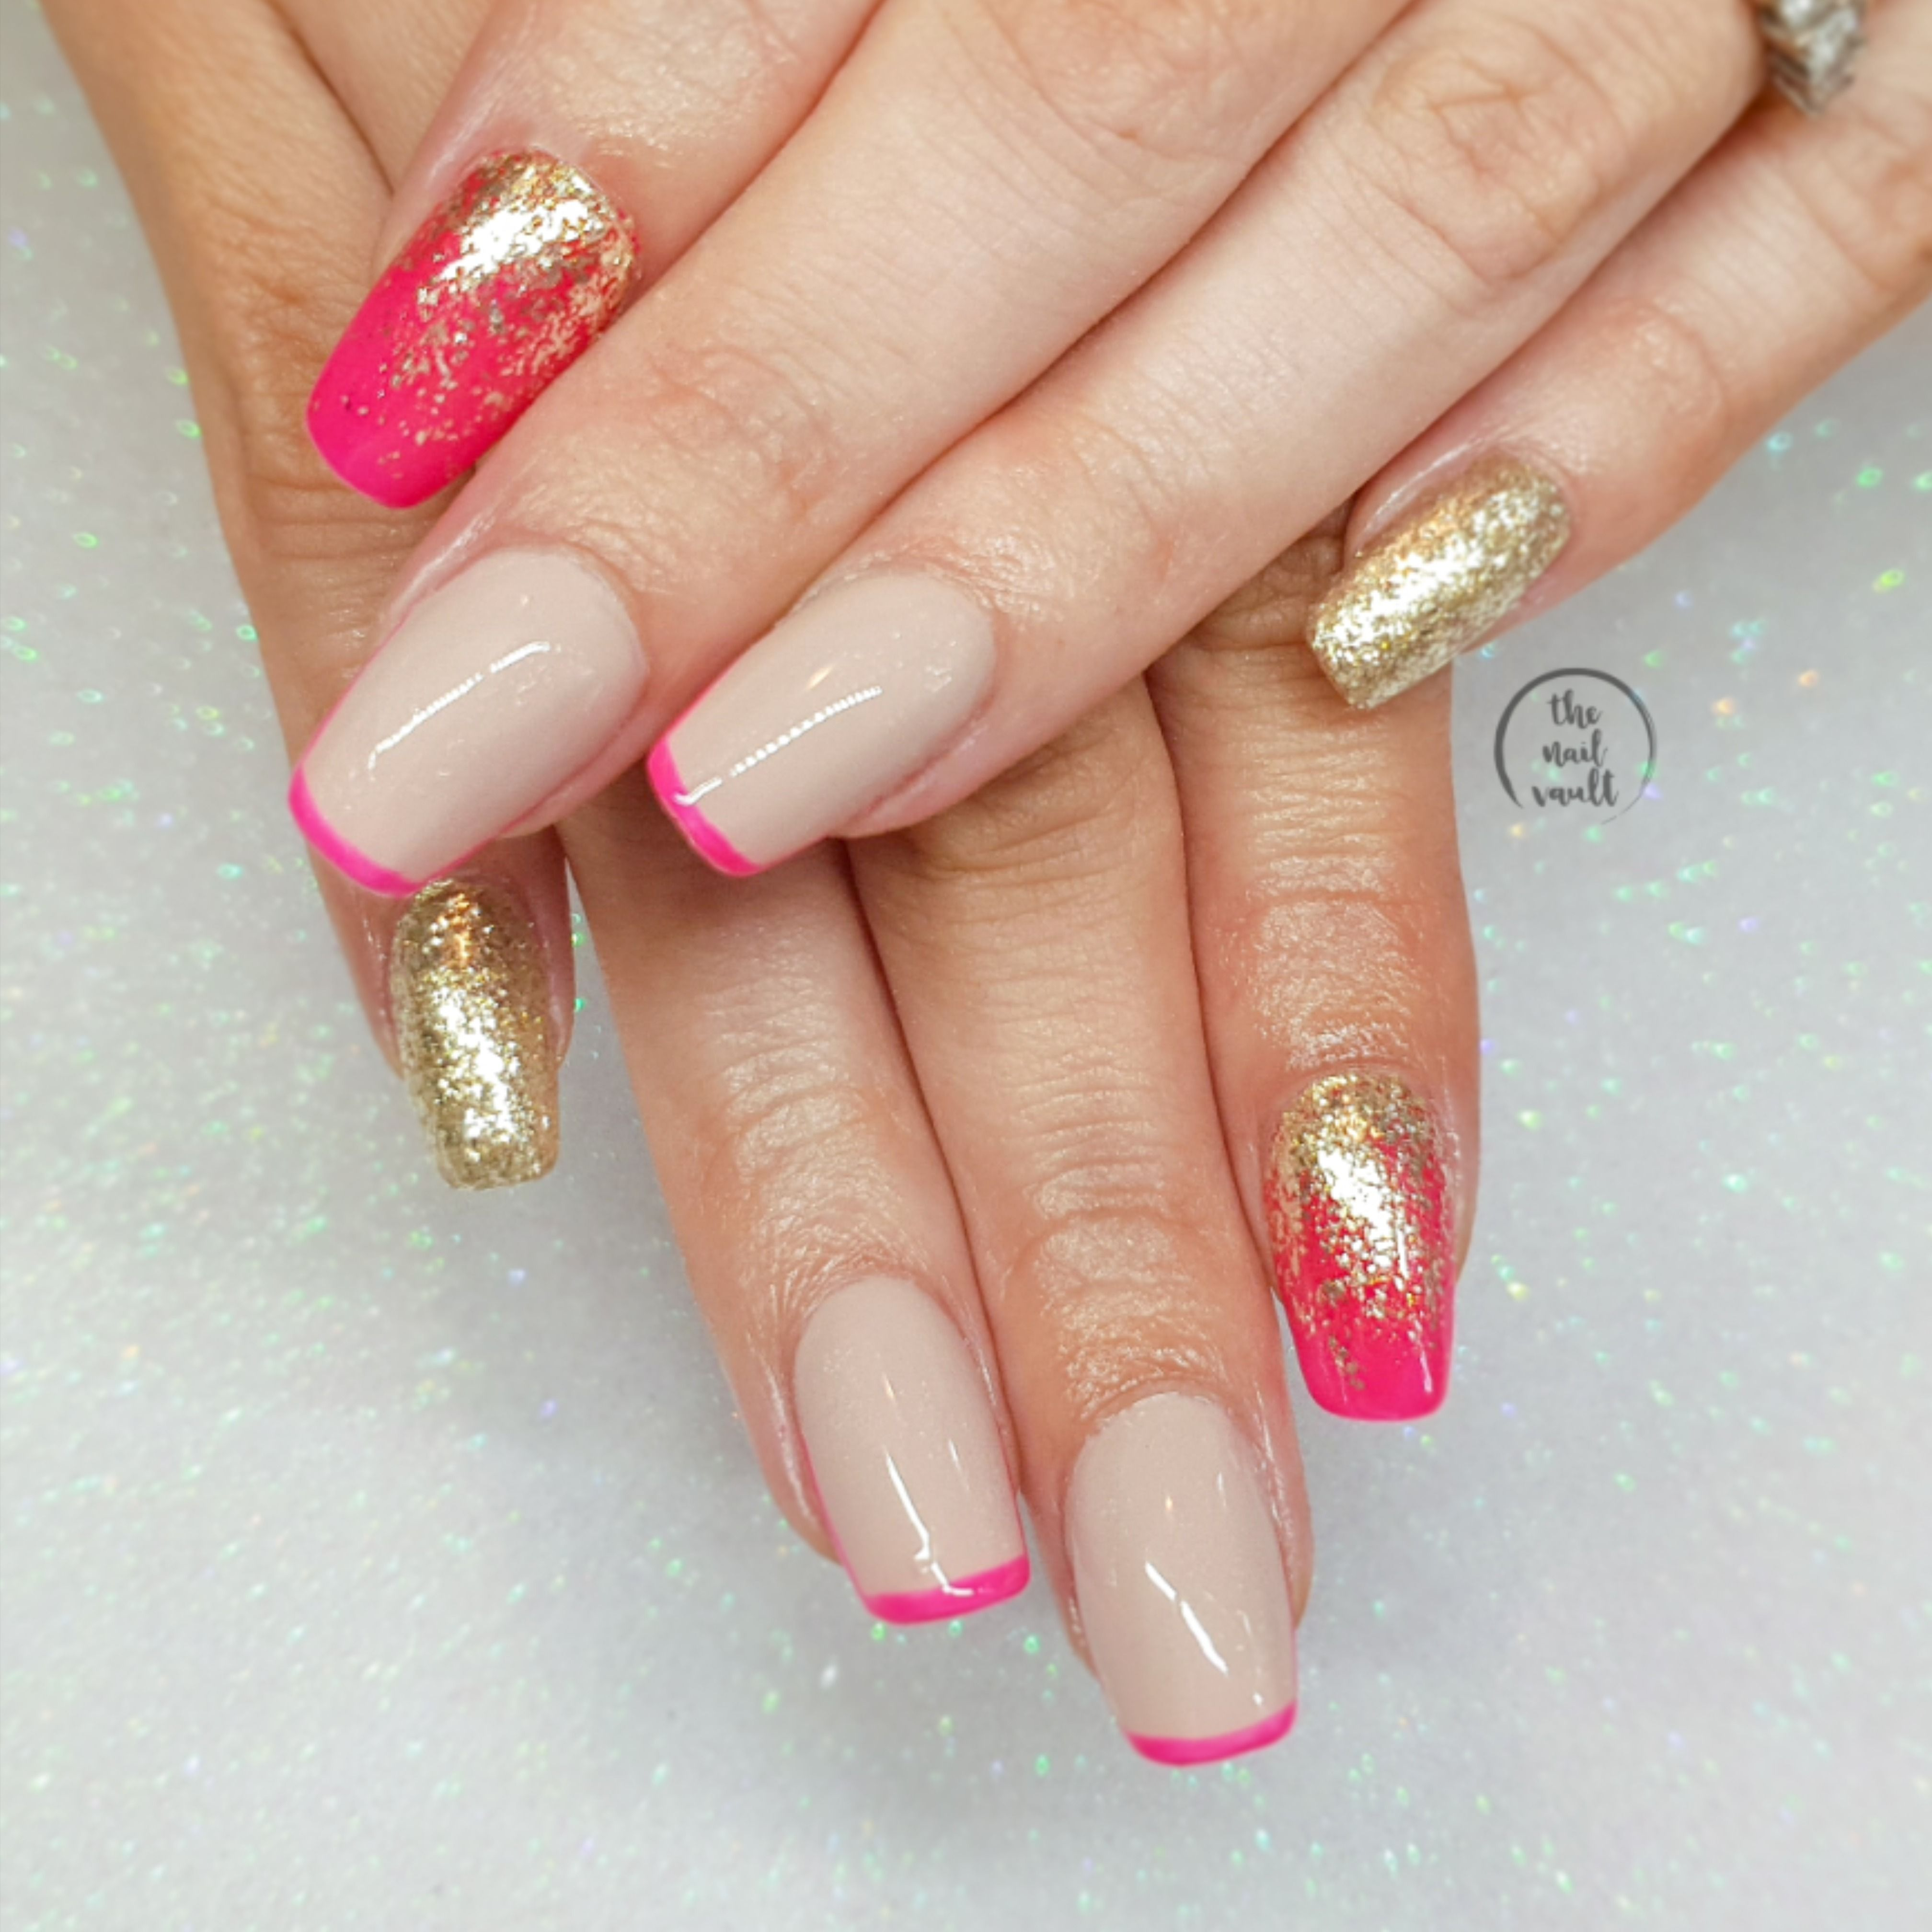 Hand Painted Acrygel Nails By Serena The Nail Vault Www